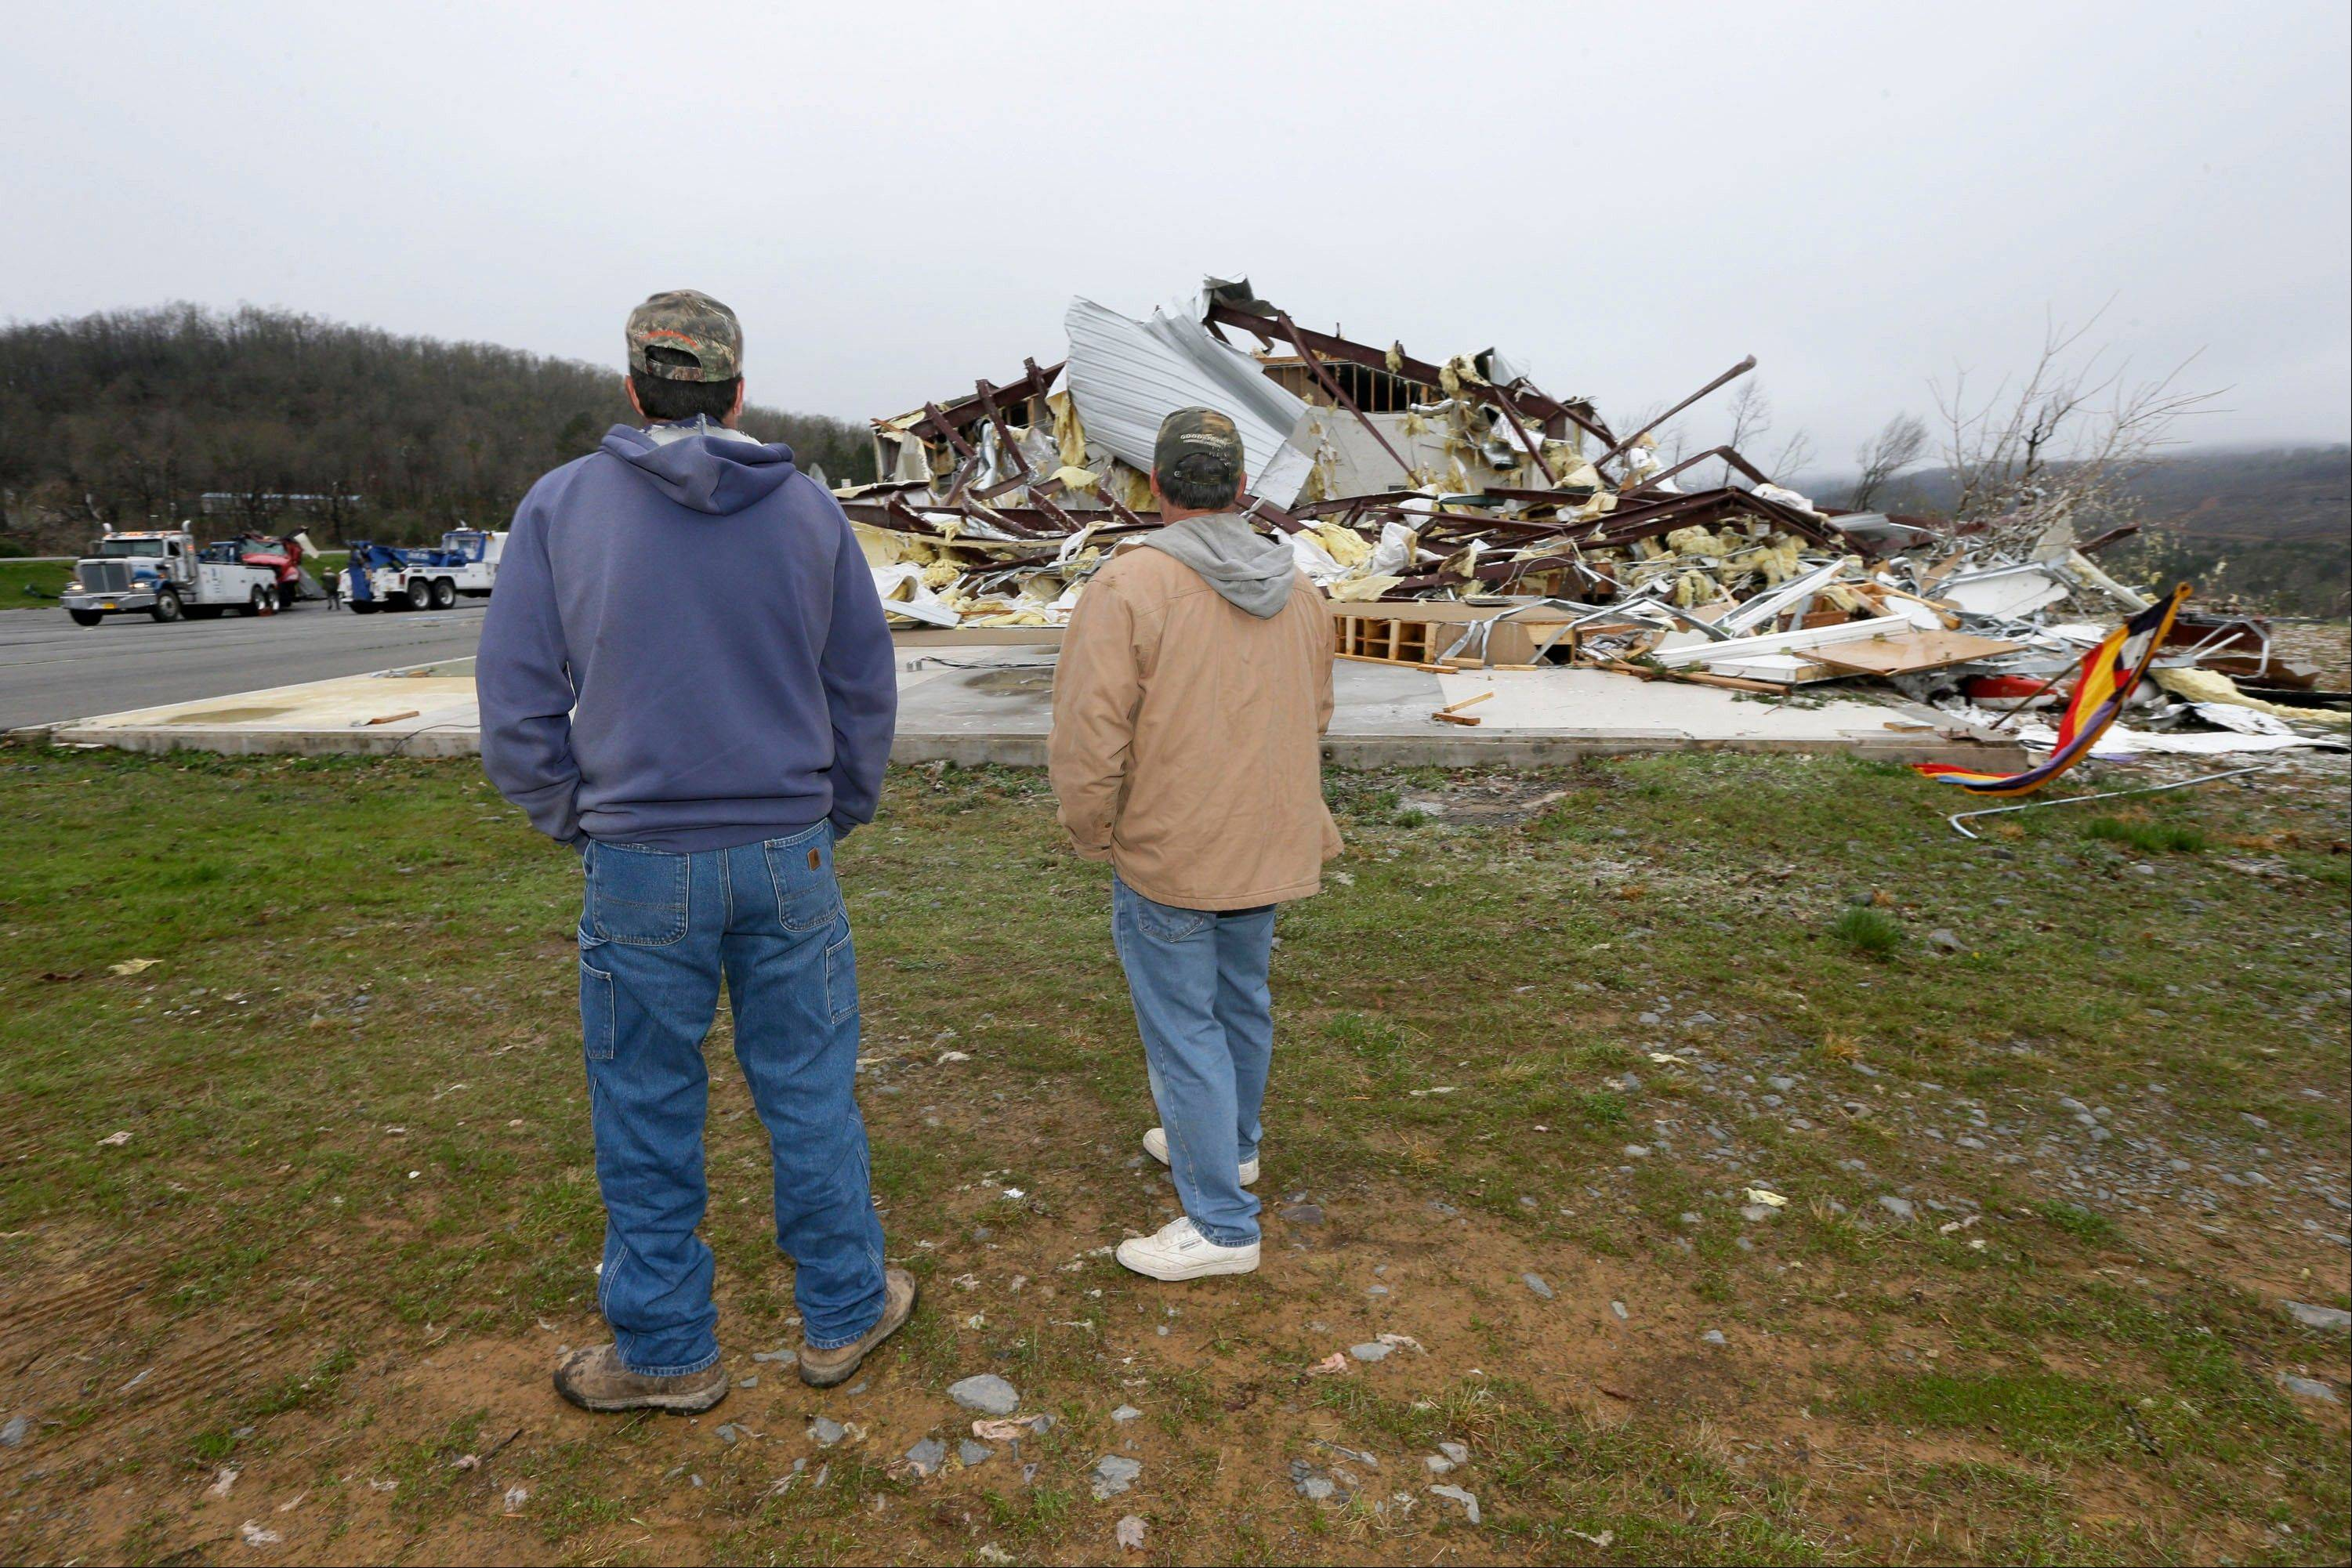 Larry Gammill, left, and Tim Parks survey tornado damage at Botkinburg Foursquare Church in Botkinburg, Ark., Thursday, April 11, 2013, after a severe storm struck the building late Wednesday.